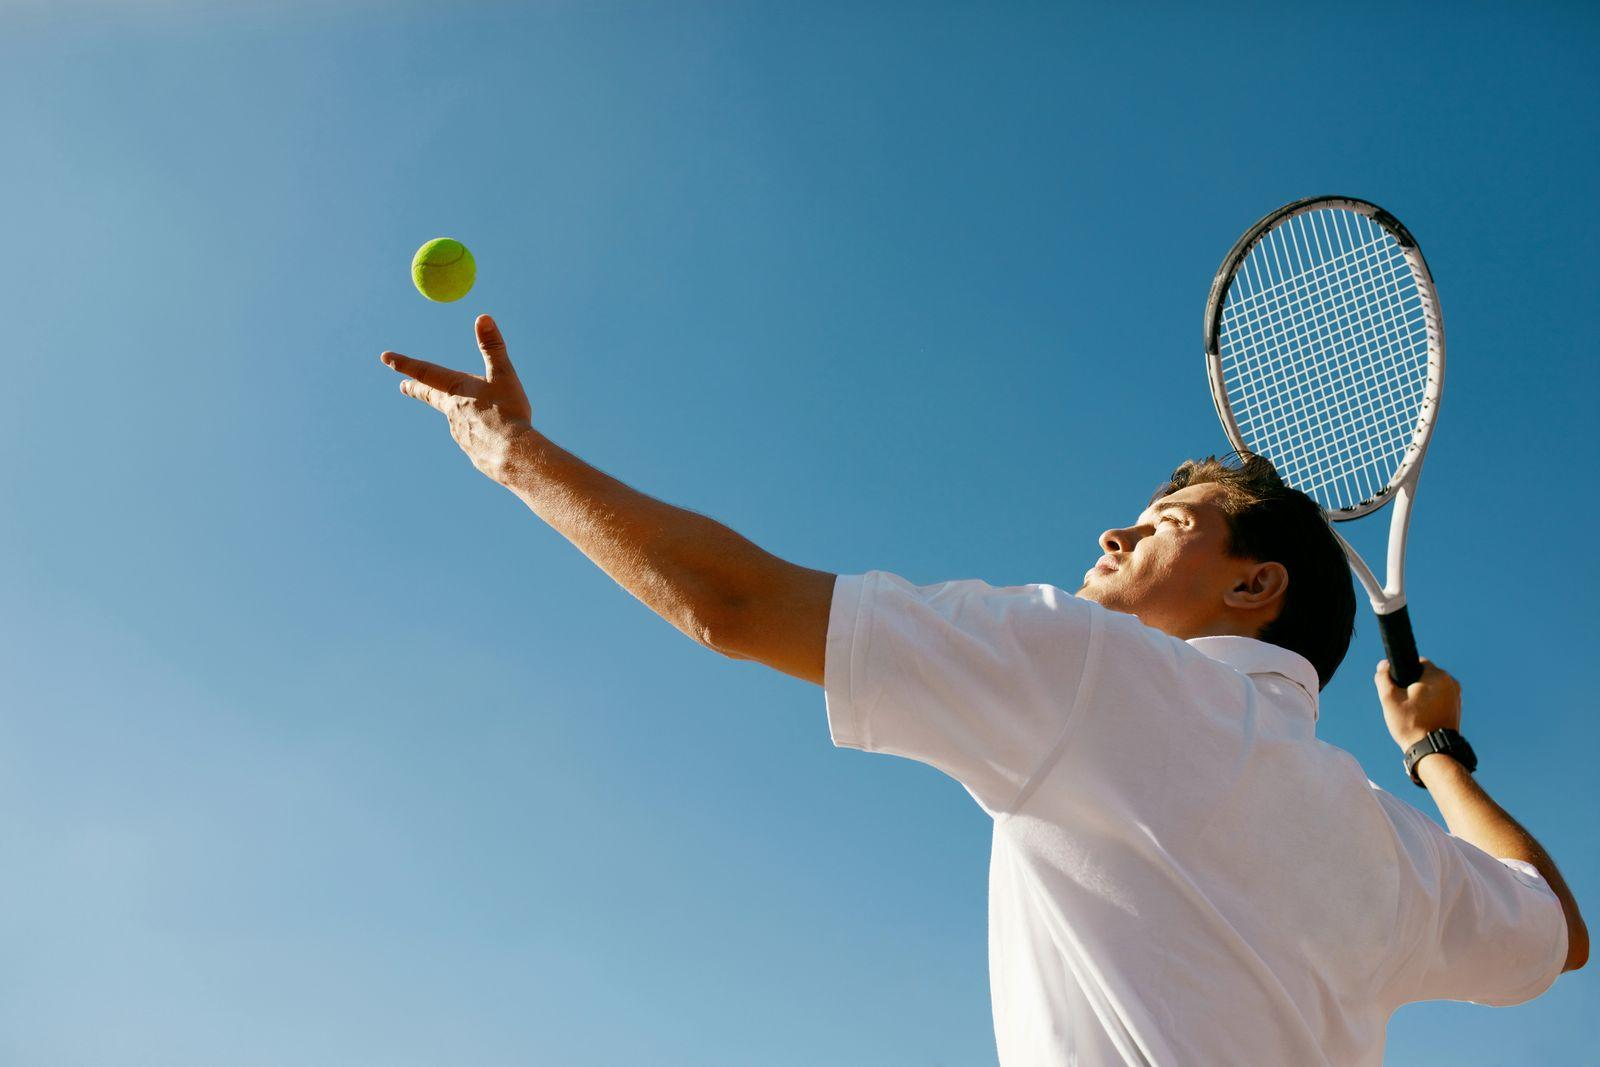 A man in the middle of serving a tennis ball